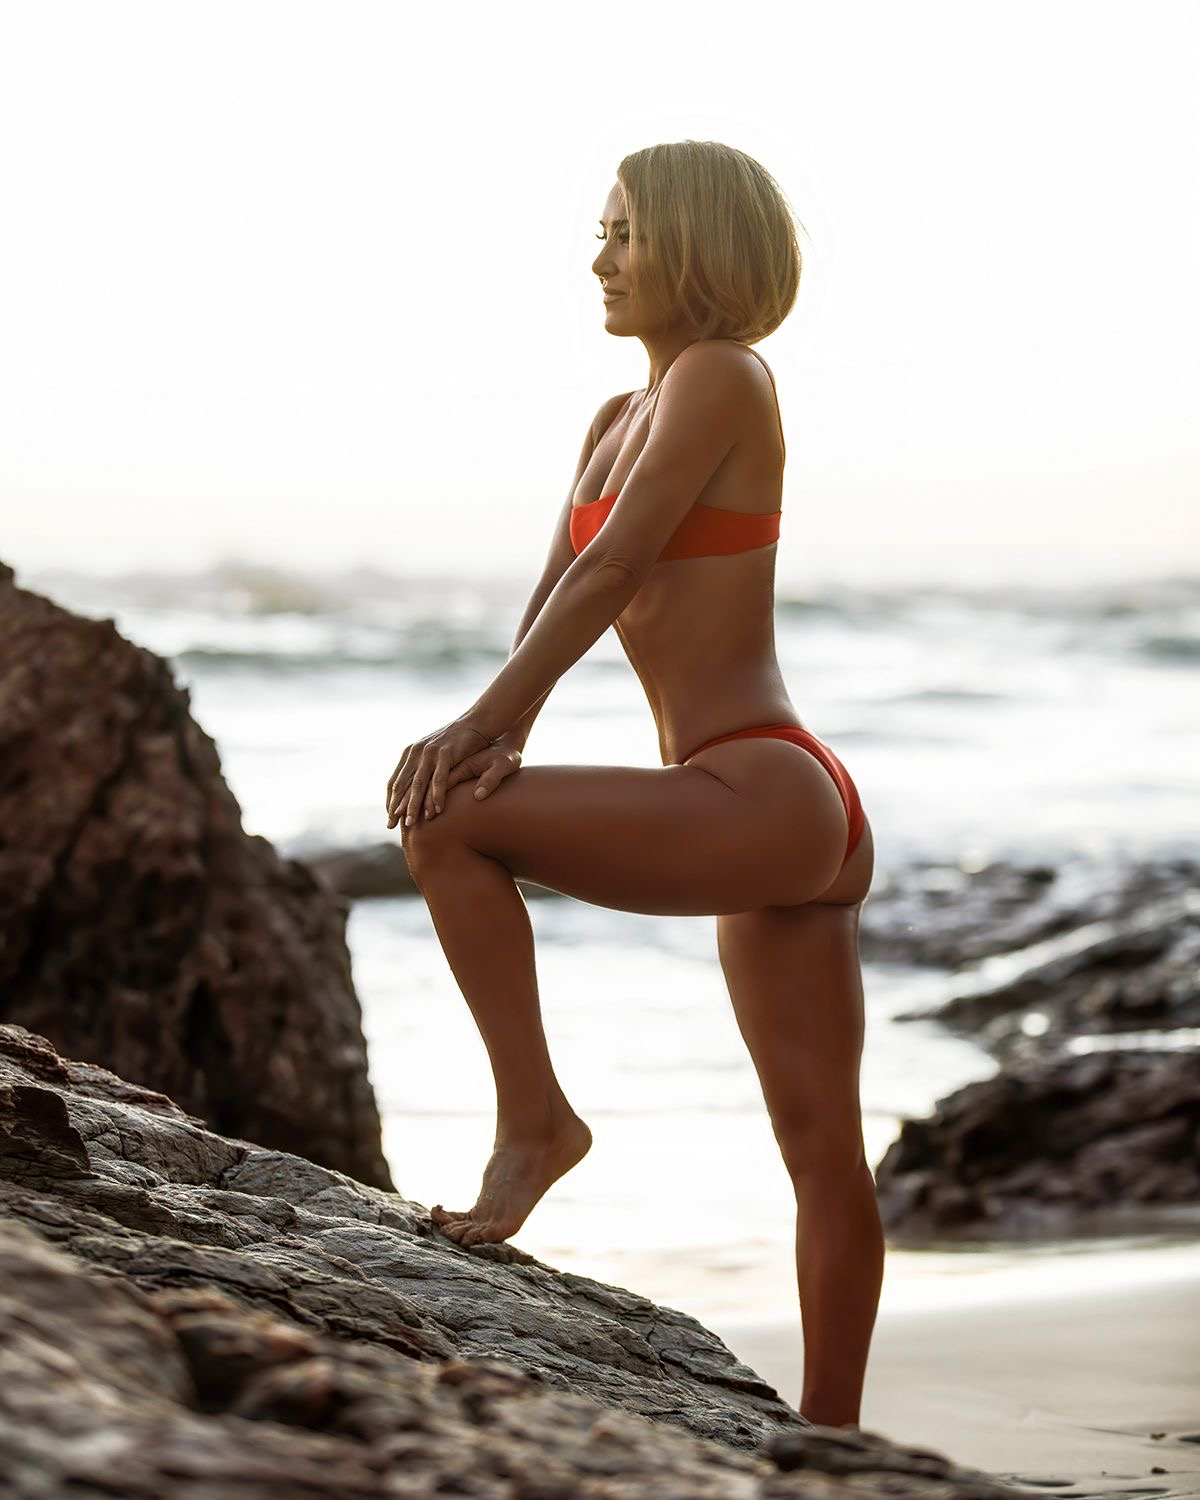 Queensland fitness model posing on the rocks